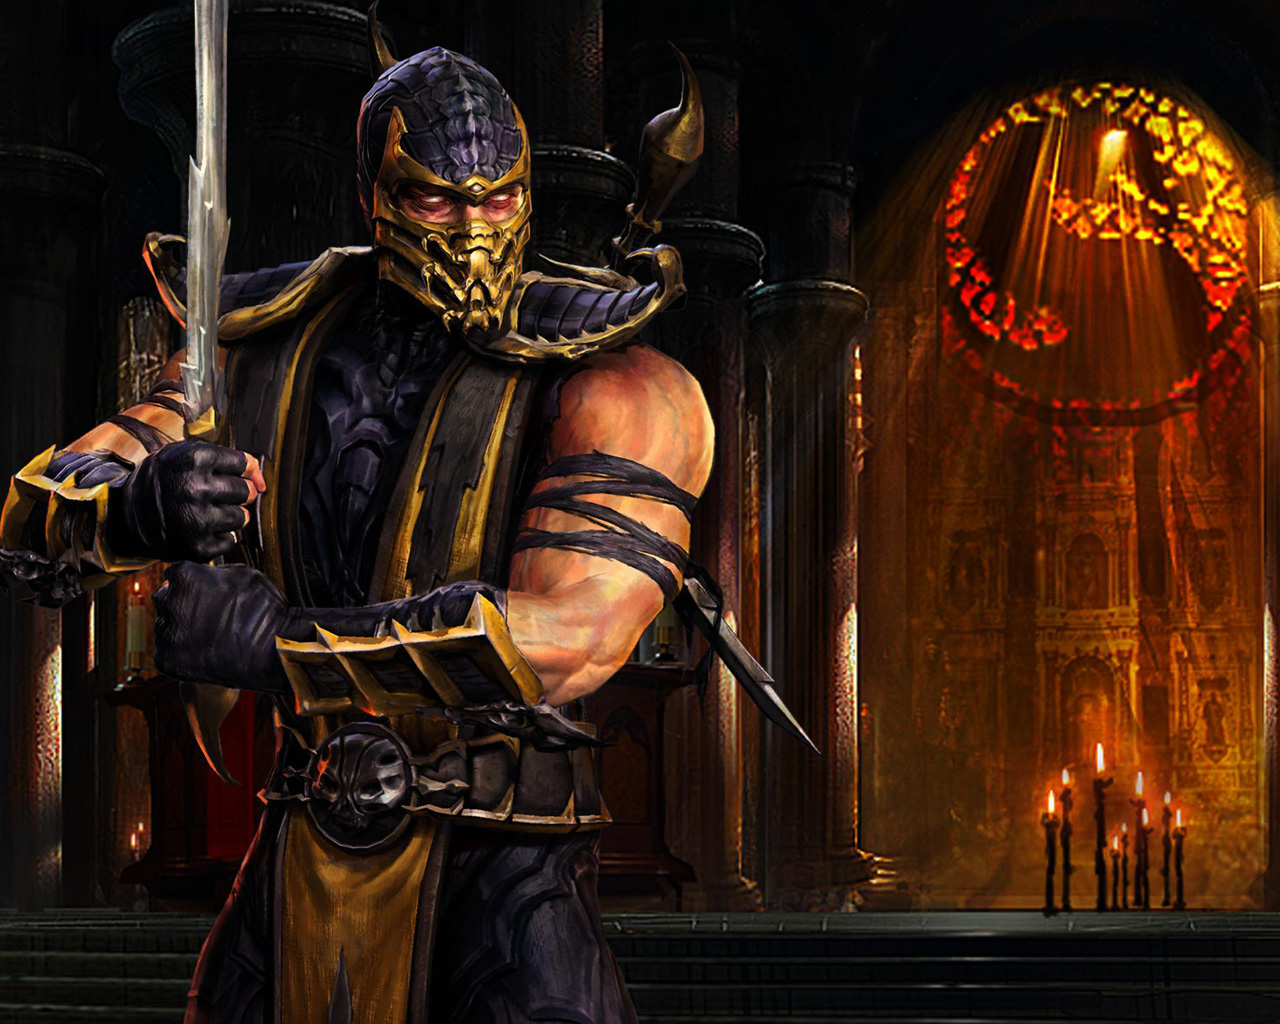 Mortal kombat scorpion wallpapers wallpapersafari - Mortal kombat scorpion wallpaper ...